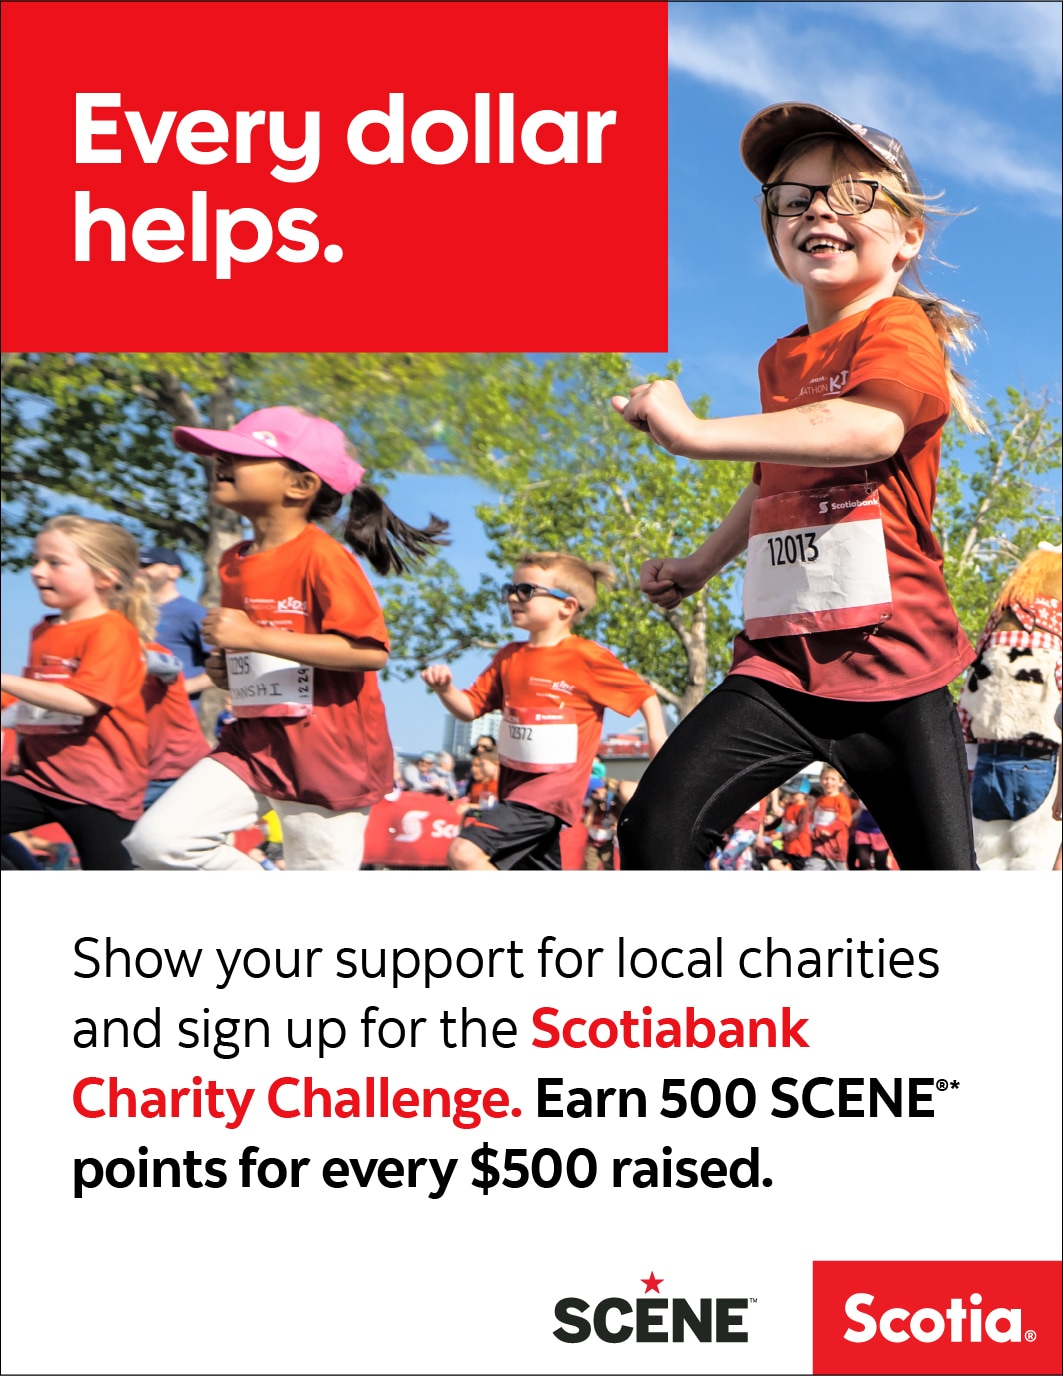 Scotiabank Charity Challenge Scene Offer